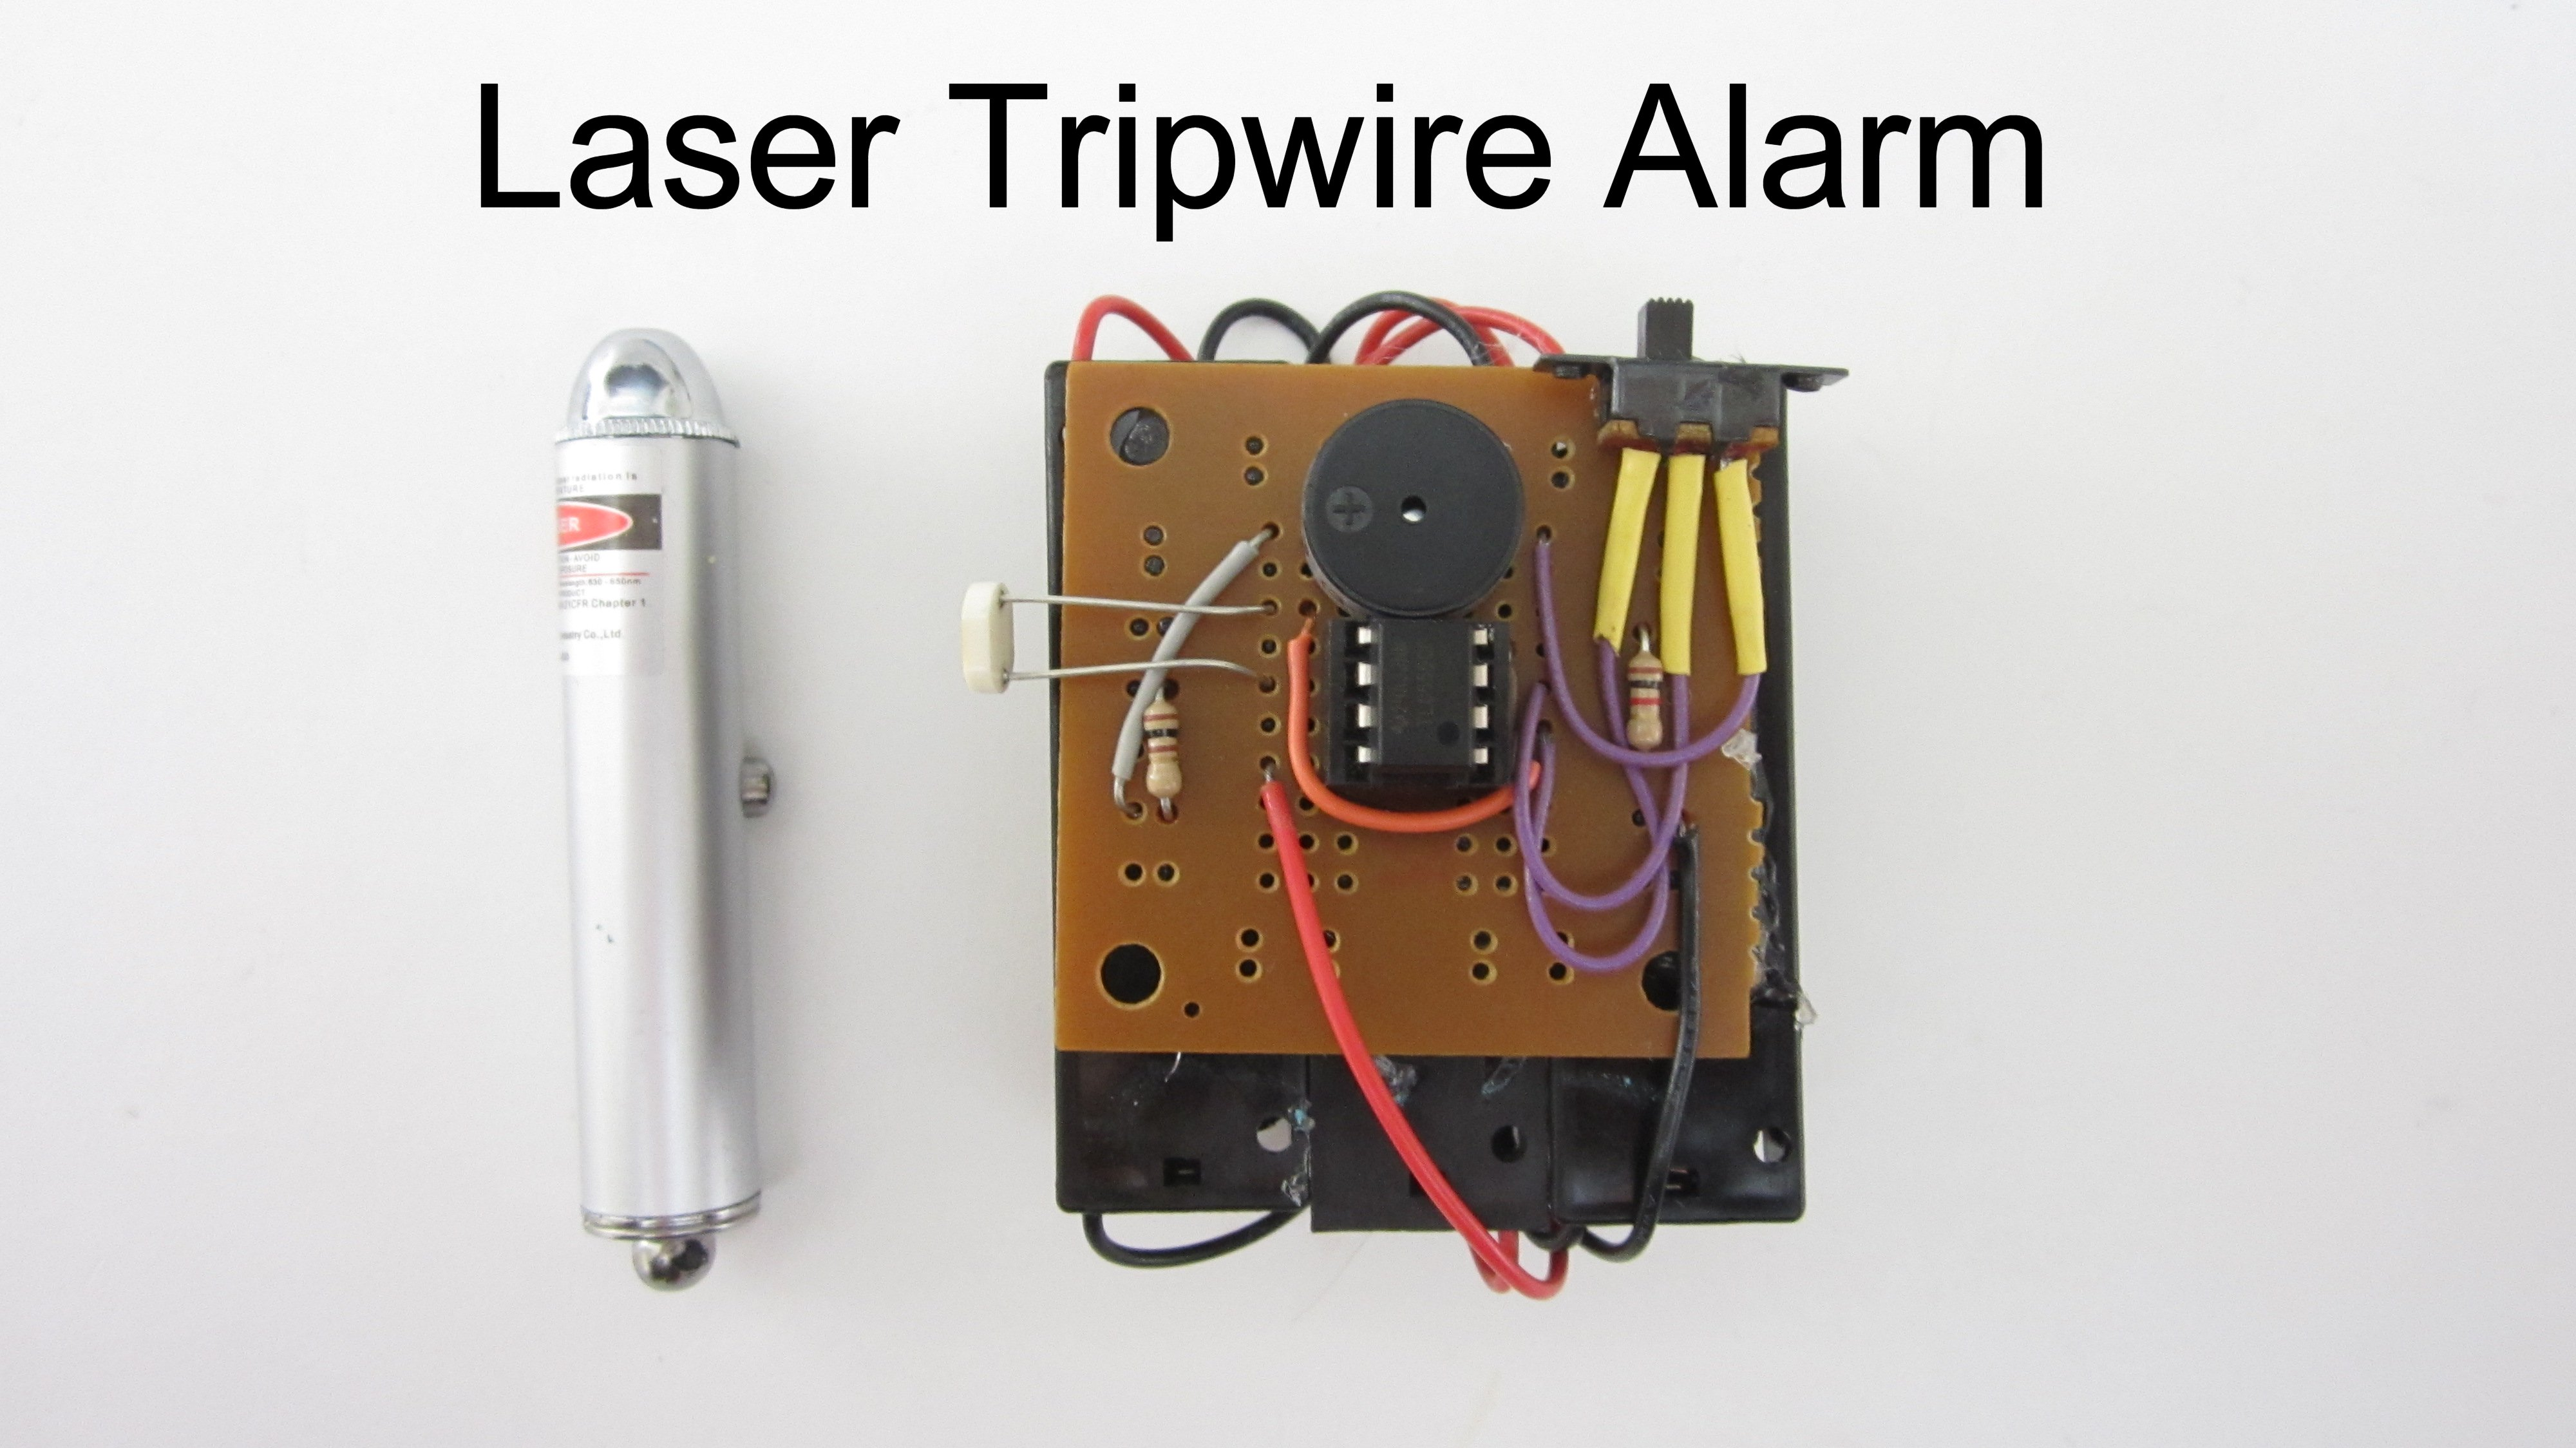 Build A Simple Laser Tripwire Alarm Make Pics Photos Your Own Metal Detector Projects Circuits